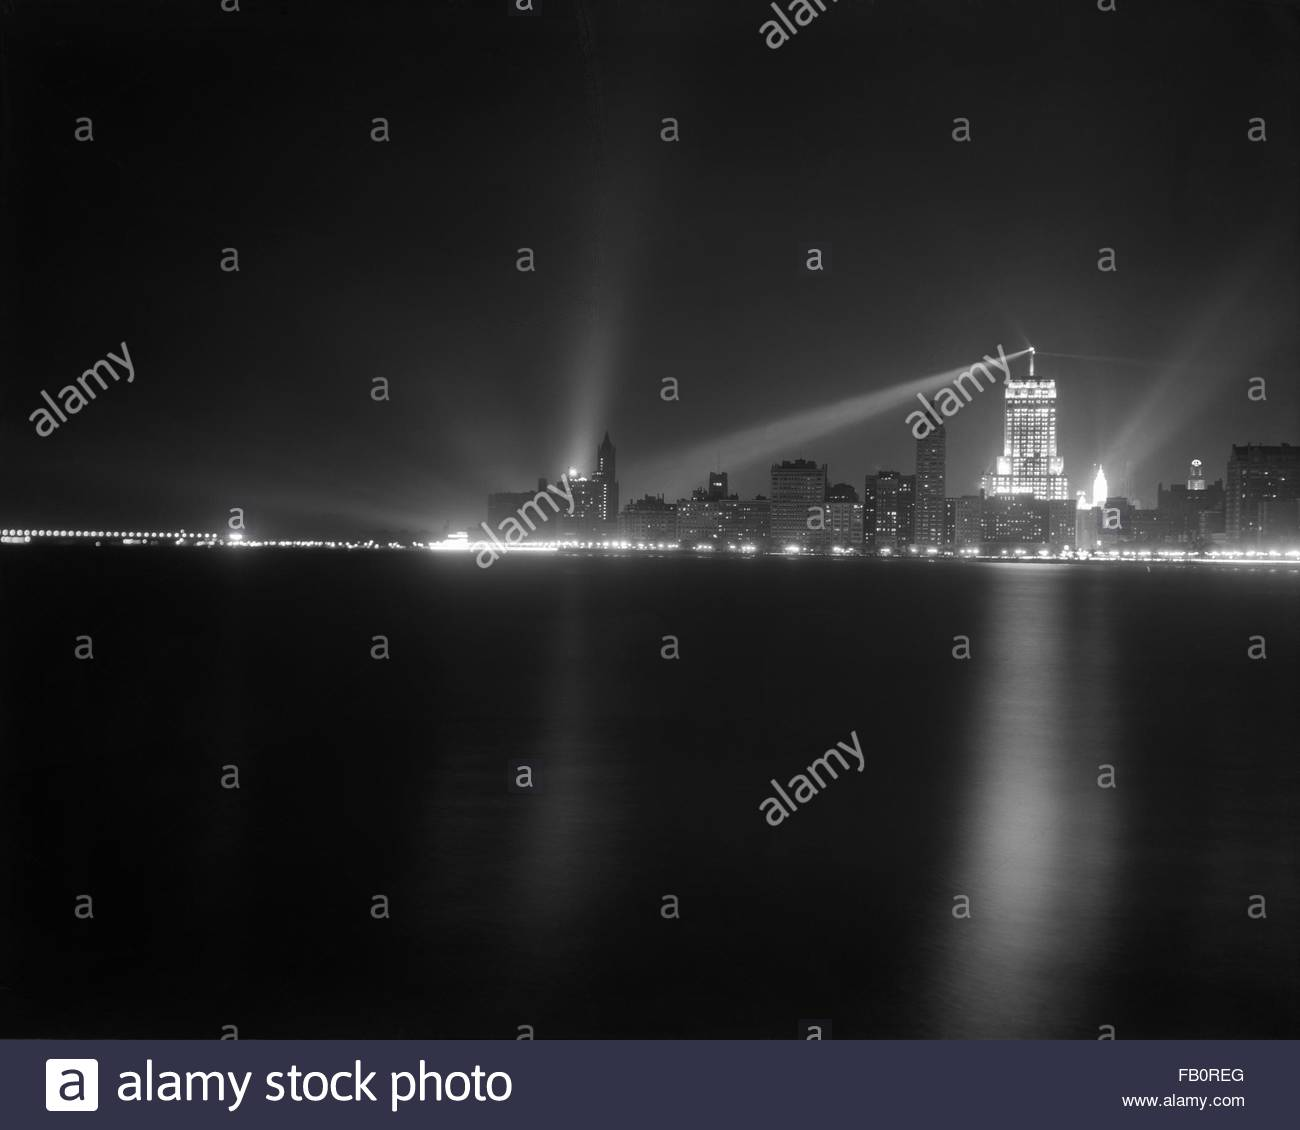 Palmolive Building in Chicago (Ill.), night views, 1939 July 11. Chicago skyline at night. - Stock Image